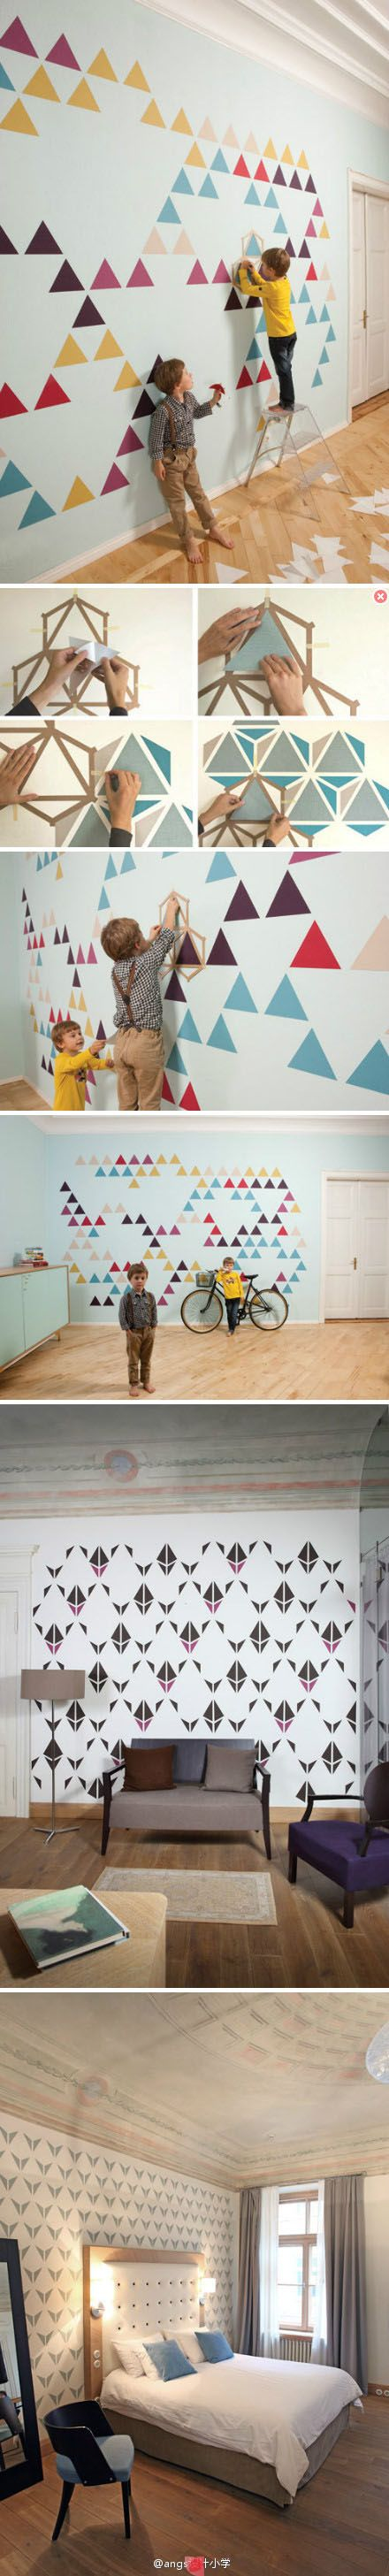 triangles de peinture sur un mur mur faire pinterest motif de triangle graphisme et. Black Bedroom Furniture Sets. Home Design Ideas